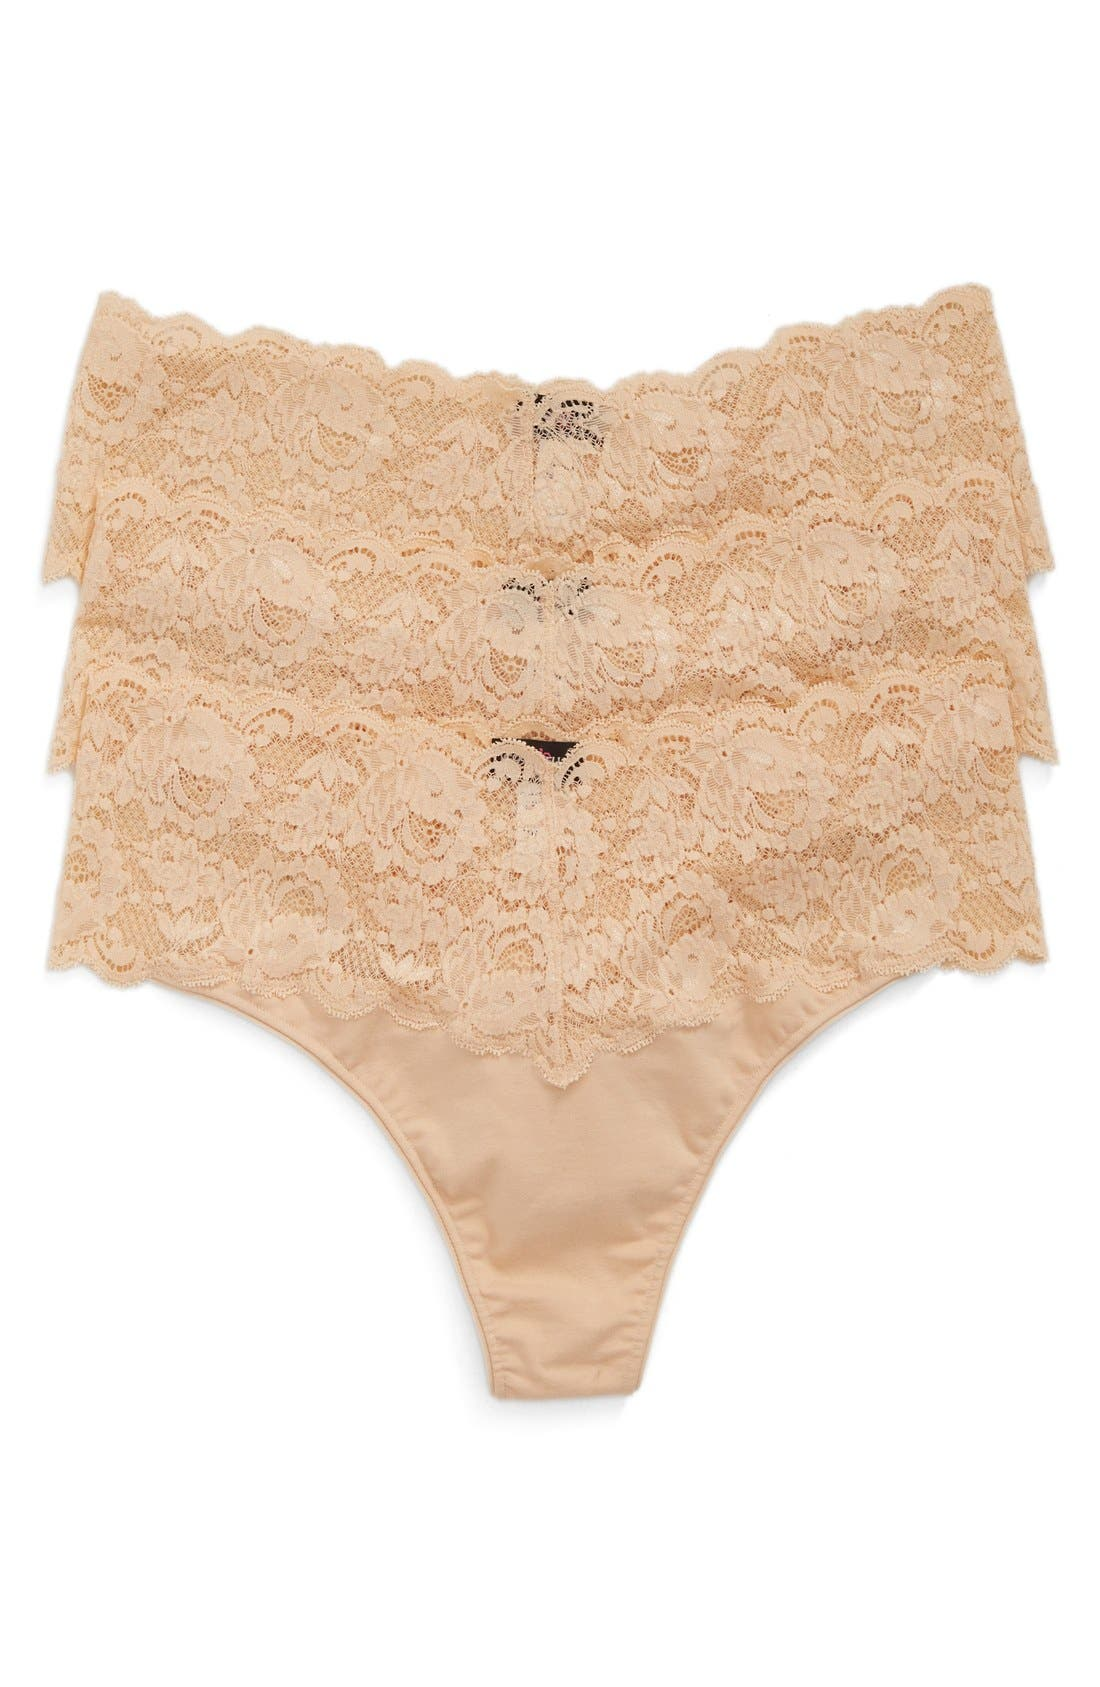 Cosabella 'Lovelie' Lace Trim Thong (Plus Size) (3-Pack) (Online Only)